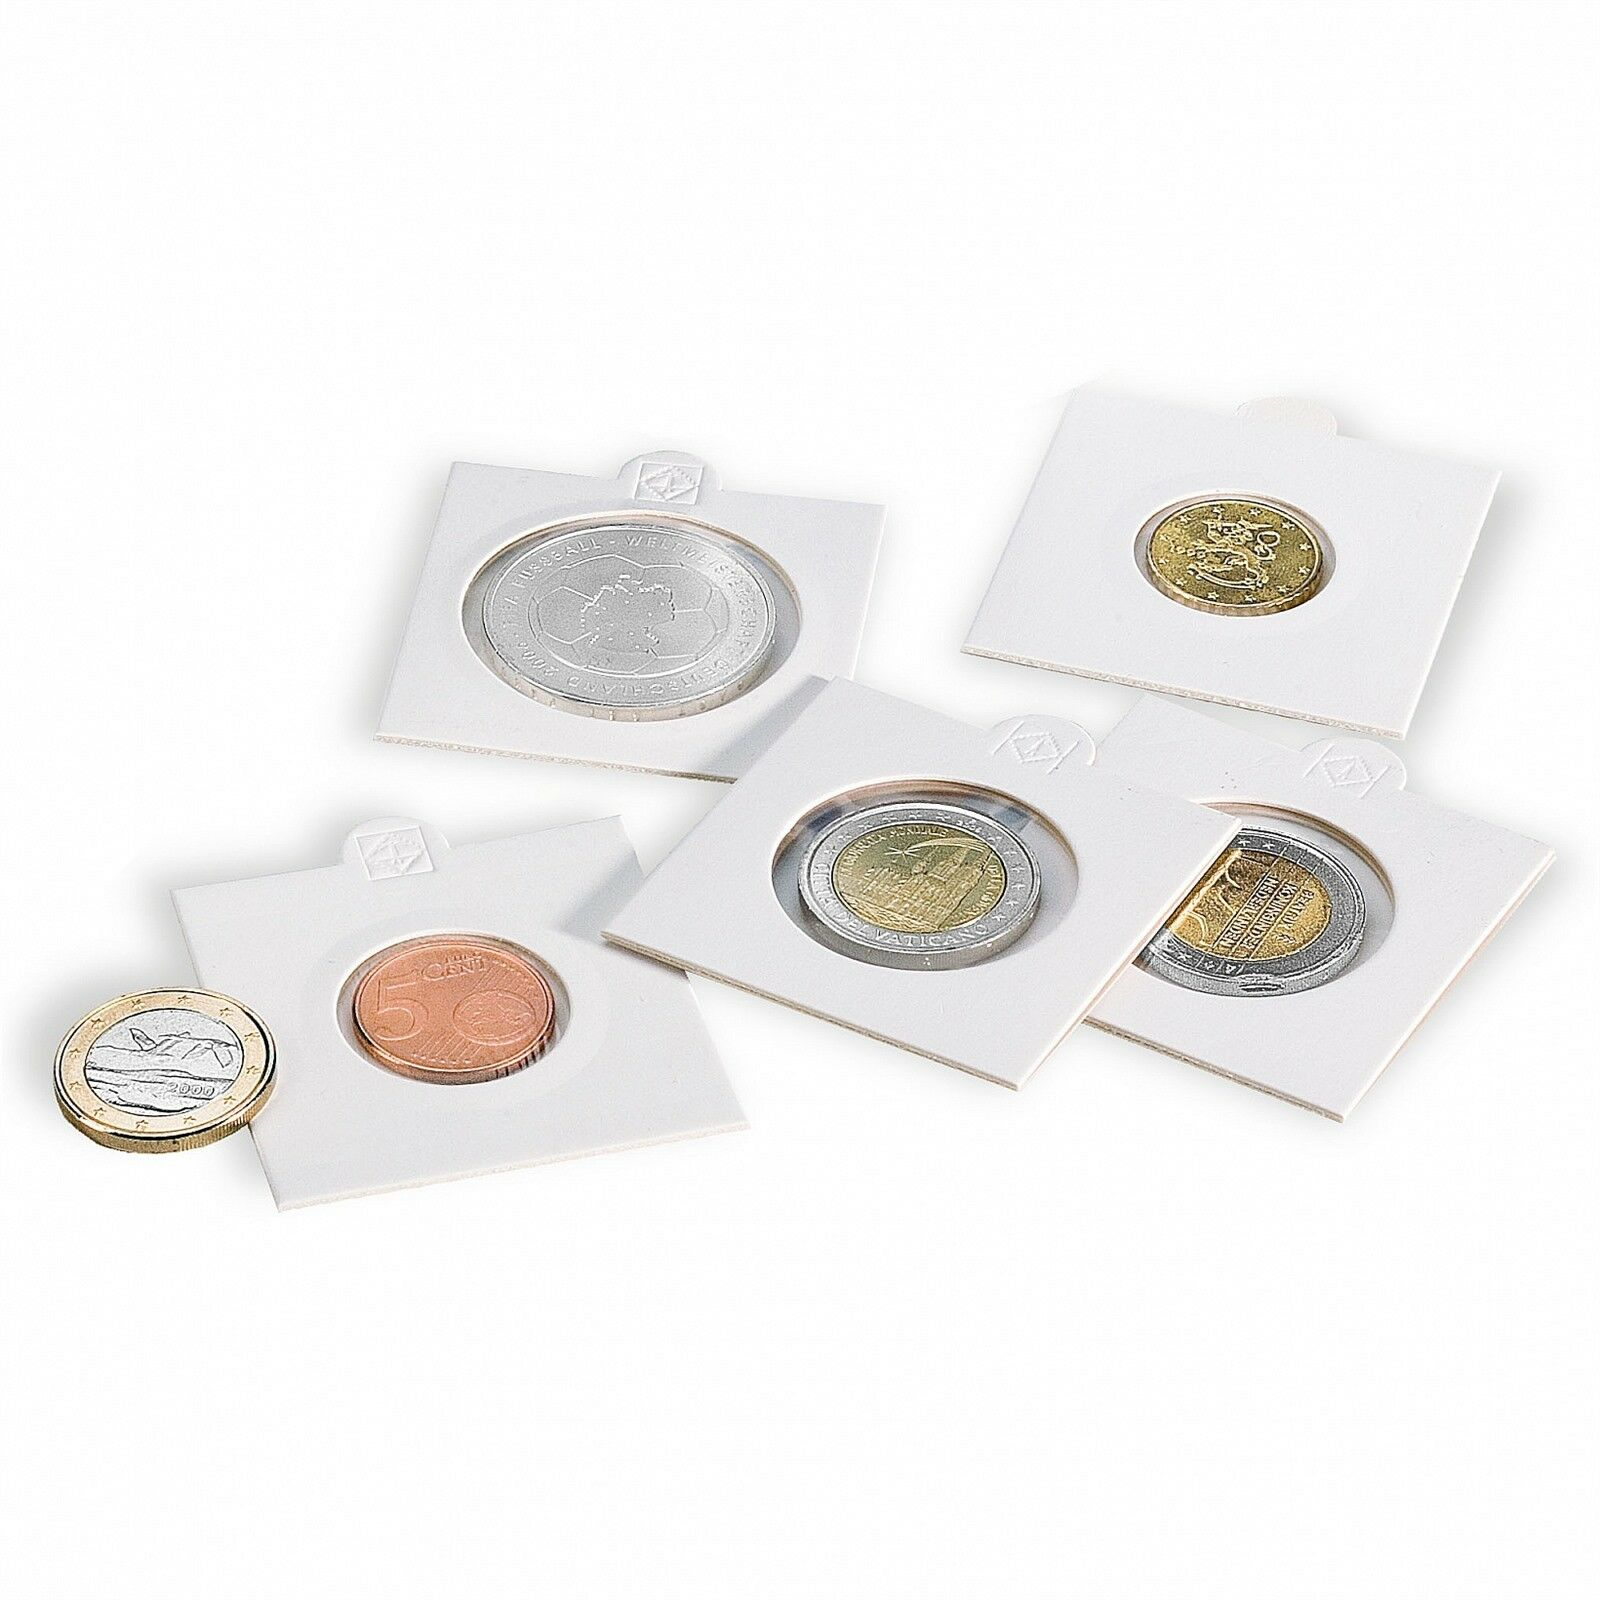 2x2 Coin Holders Self Adhesive Flips Small Dollar 0 27.5 mm 50 Pack Supersafe